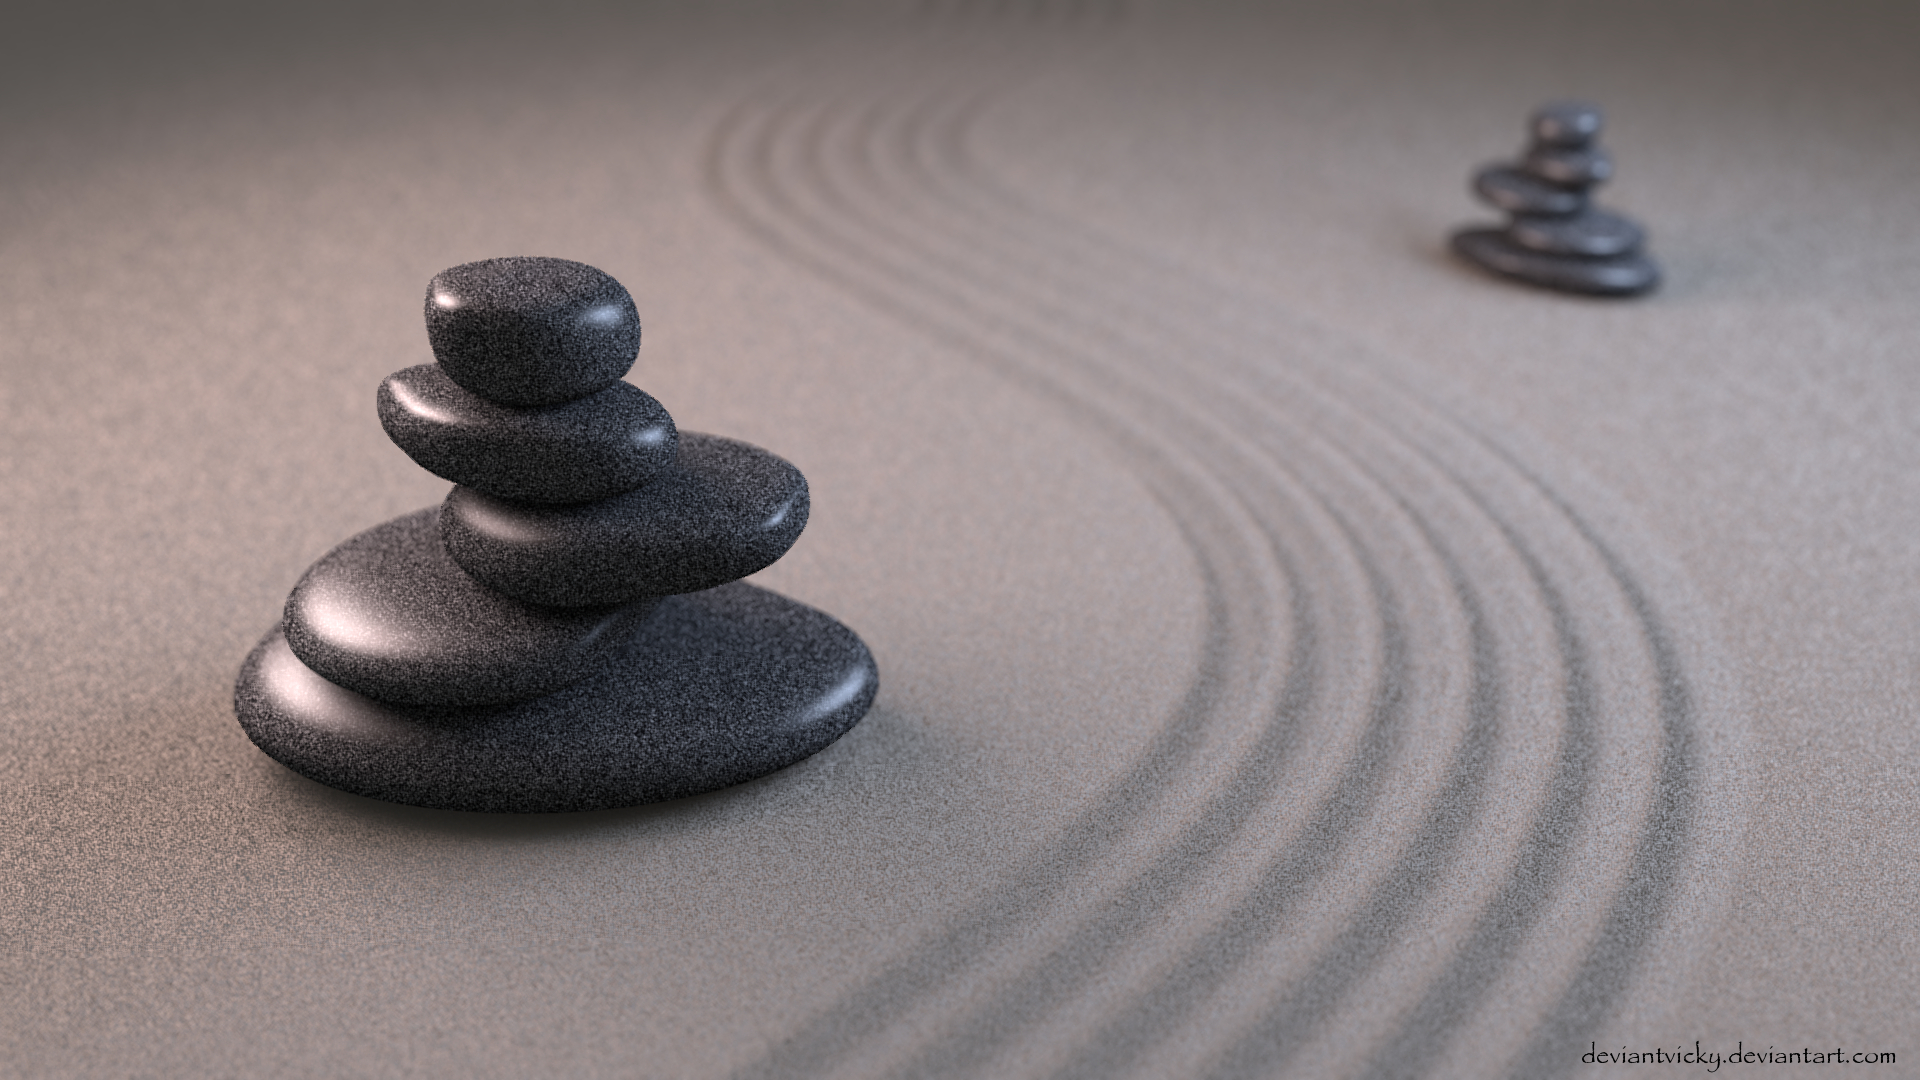 Zen Computer Wallpapers, Desktop Backgrounds | 1920x1080 ...